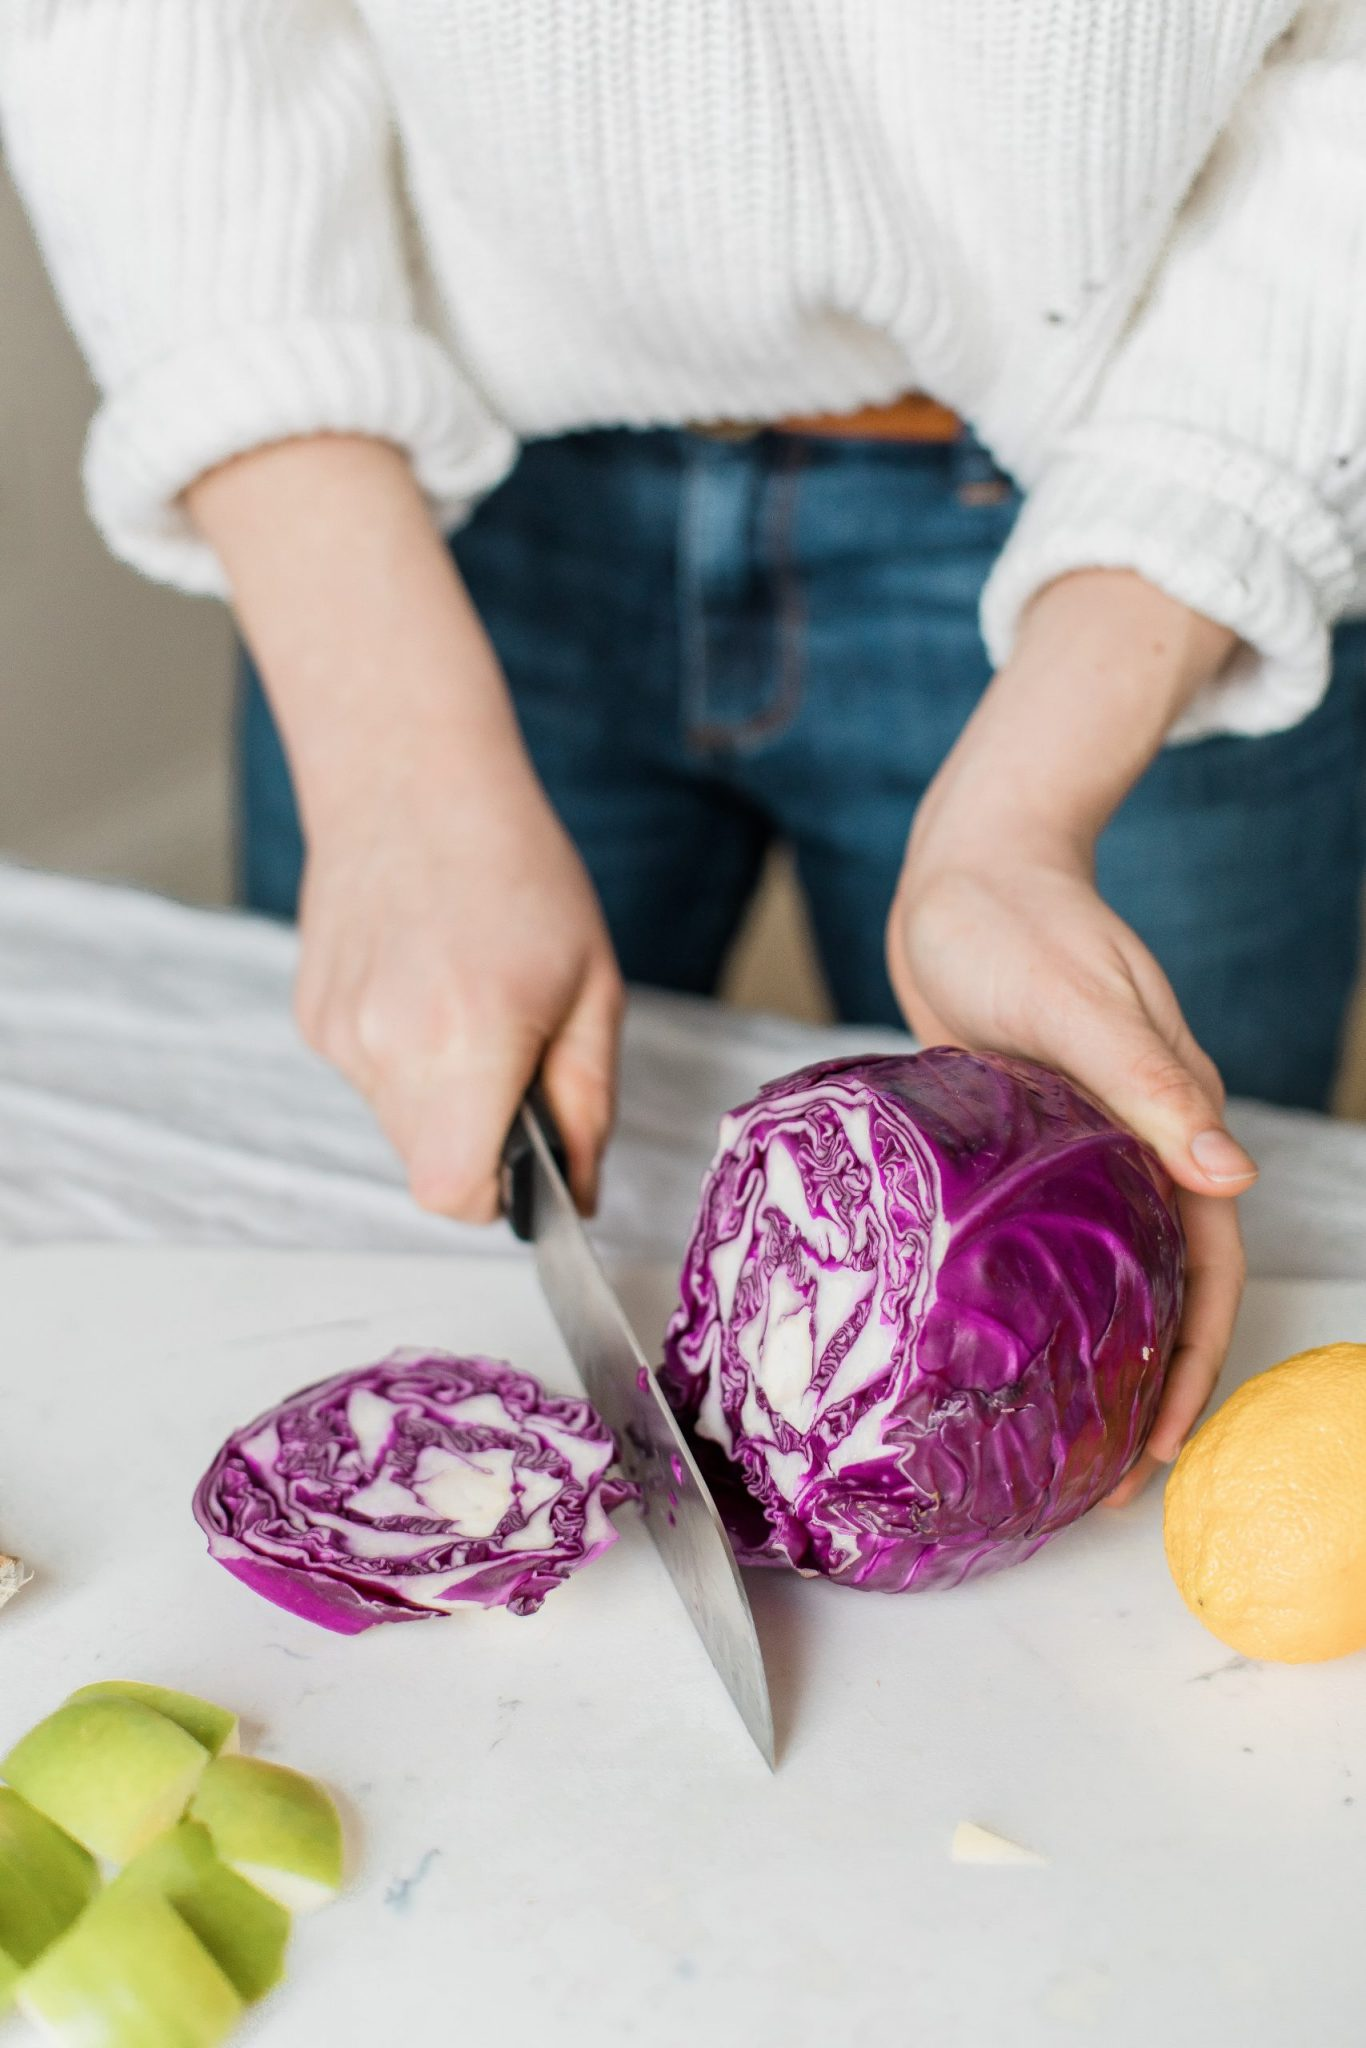 woman chopping purple cabbage with chef knife to develop heart healthy eating habits.